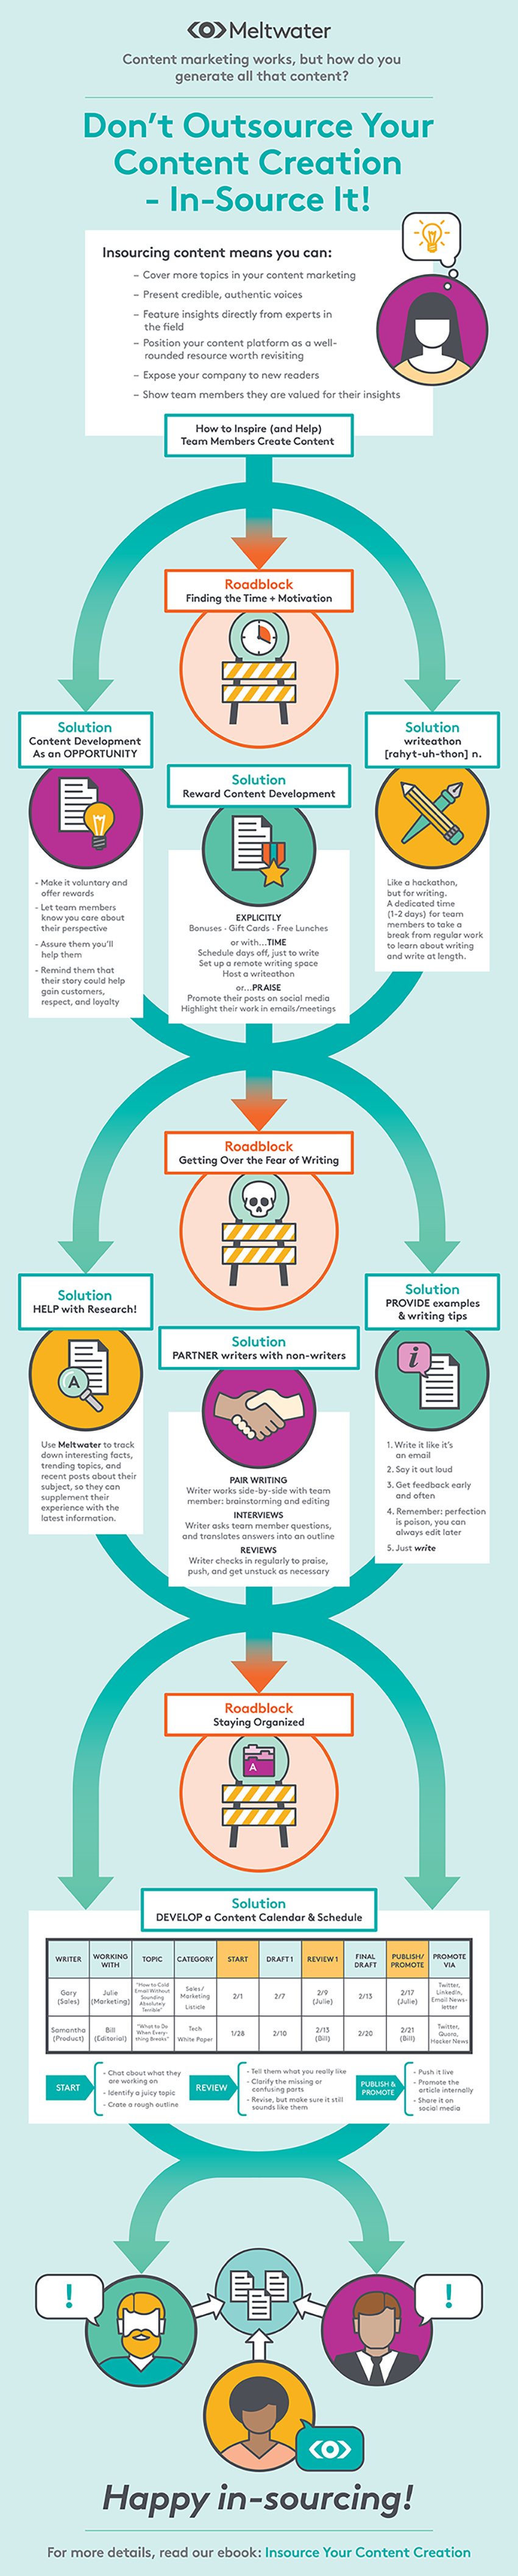 meltwater_insourcing_infographic_lg.png